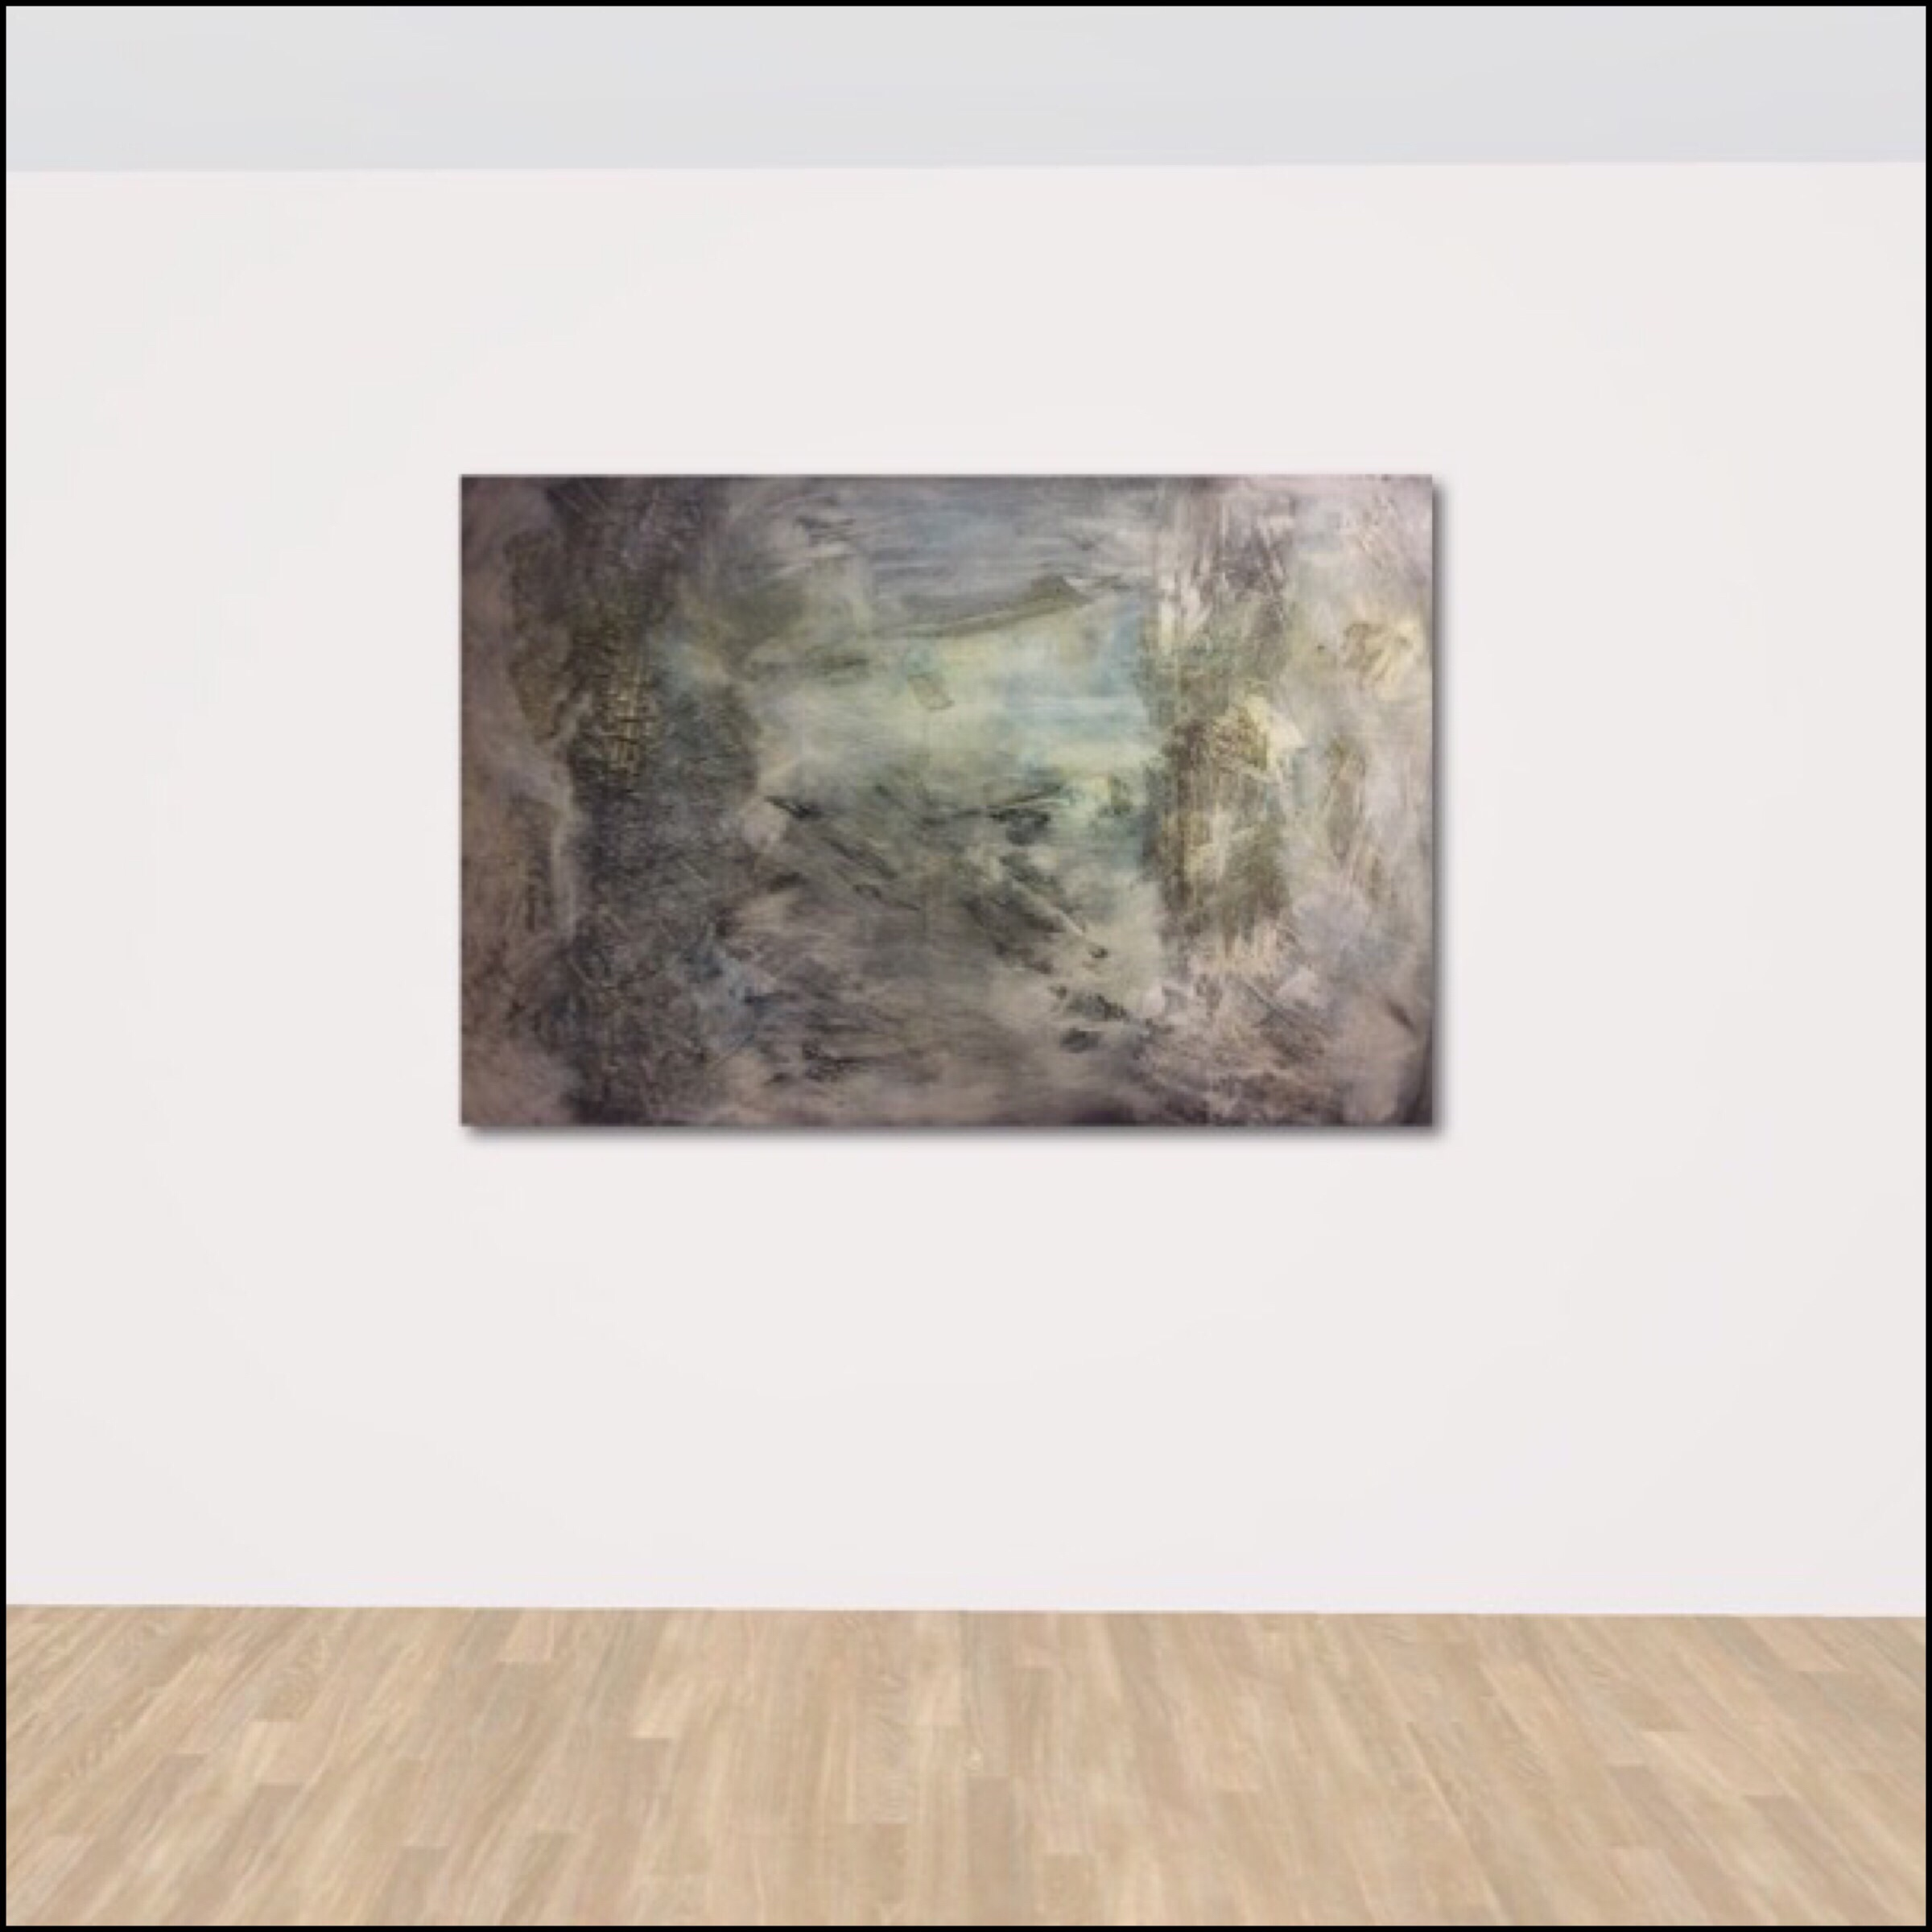 Interior design: Textured abstract painting in grey and a touch of blue